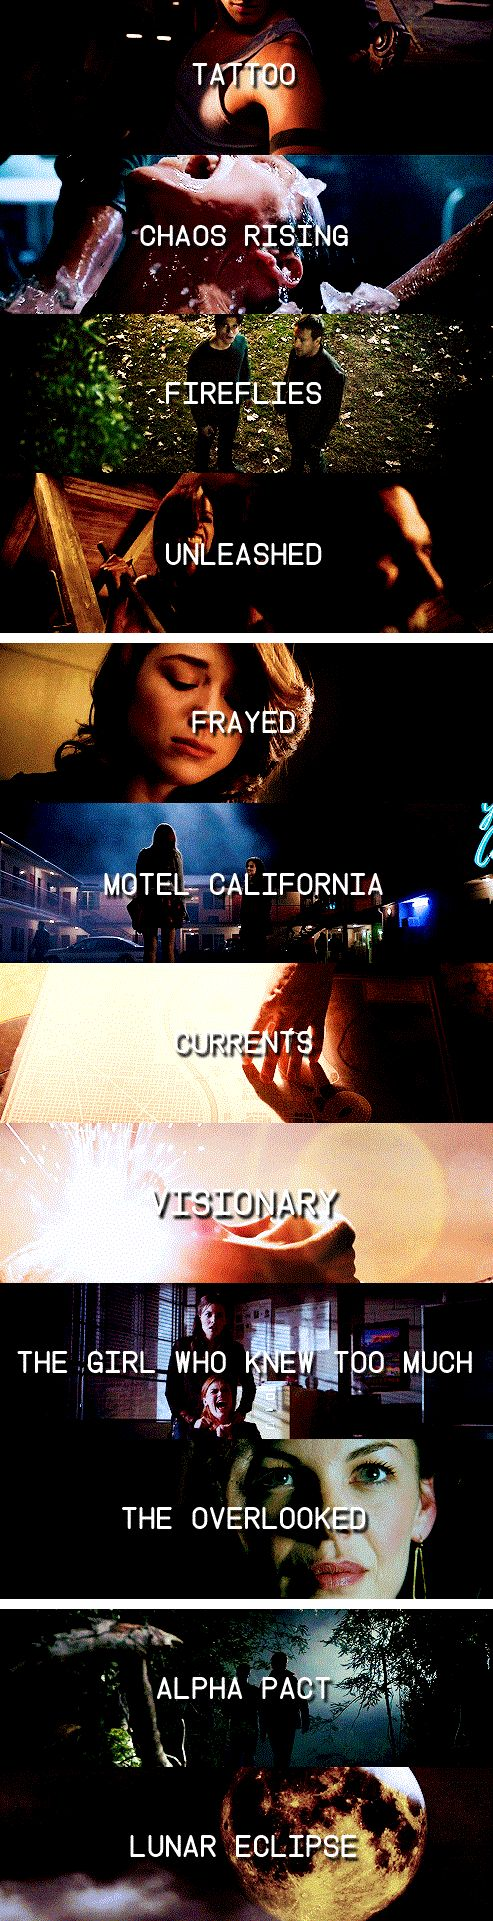 Teen Wolf Season 3A. Ok so if you dont know already i am a super fangirl. If you dont know what that is..... find out. but can i just say that season 3A made me want to hurt Jeff Davis, with a passion. So since season 3B is 24 episodes instead of twelve is going to make me want to hurt him more than i did before which is A LOT.  Fangirl: liking something ( book, TV show, etc. ) with an immense passion